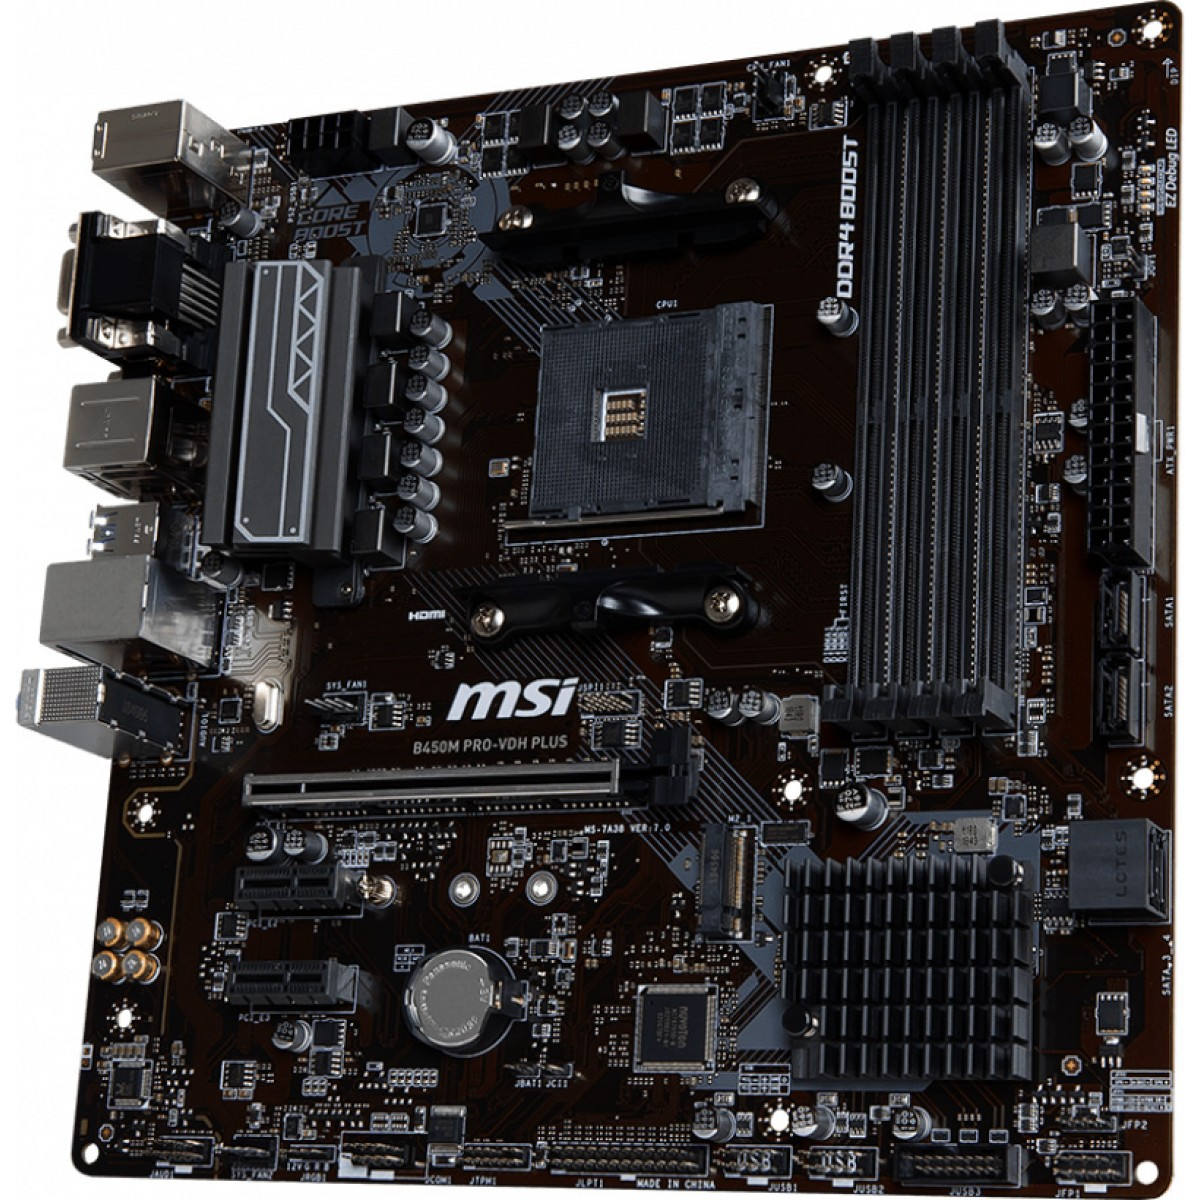 Placa Mãe MSI B450M PRO-VDH PLUS, Chipset B450, AMD AM4, mATX, DDR4